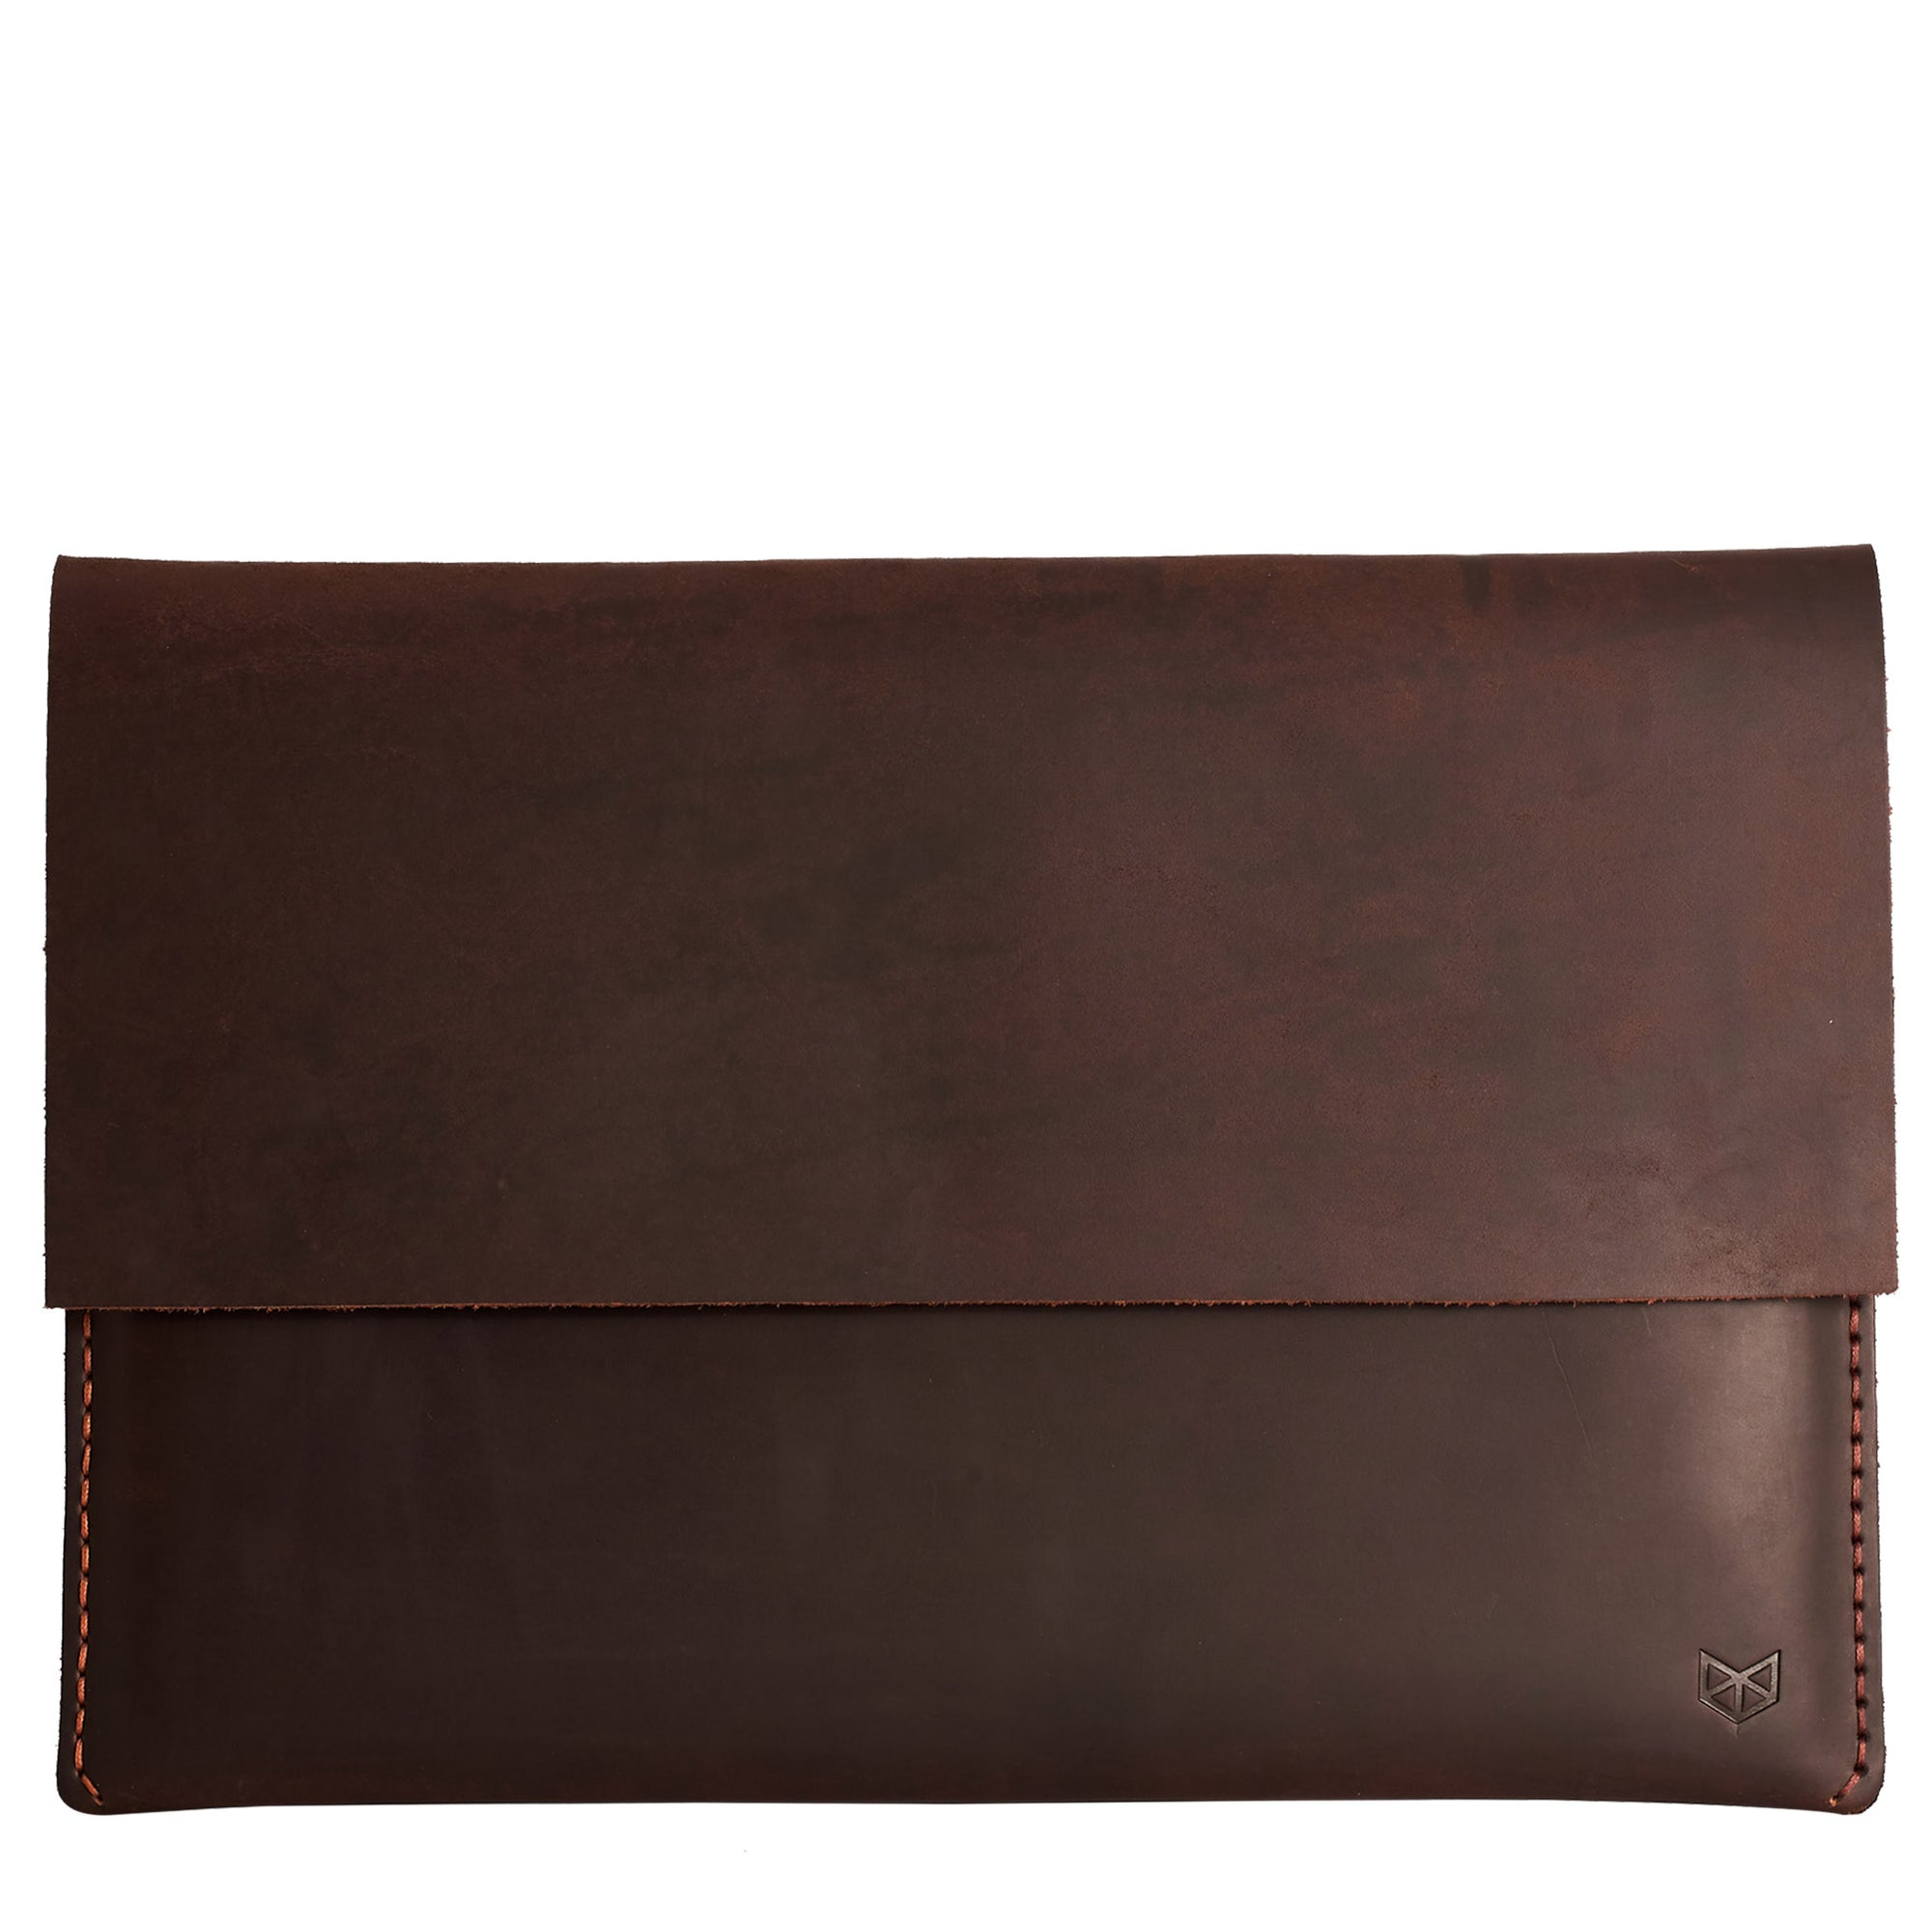 Closed dark leather case for Microsoft Surface